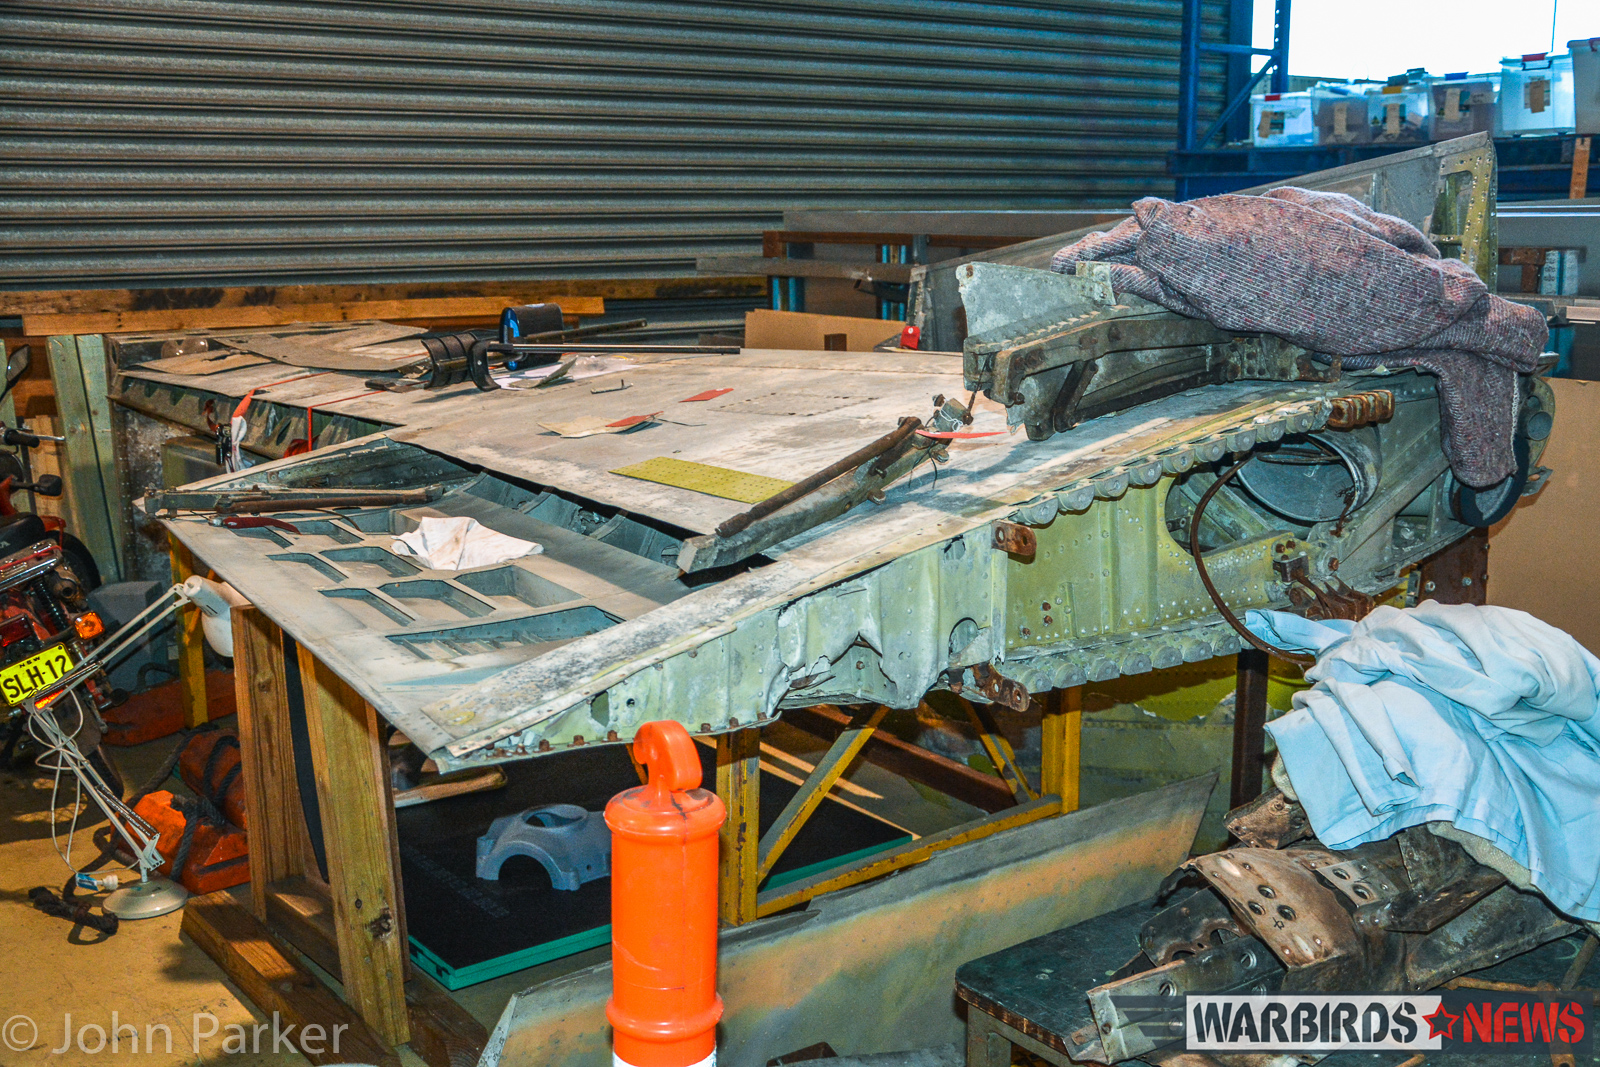 One of the Lightning outer wing panels awaiting restoration. (photo by John Parker)